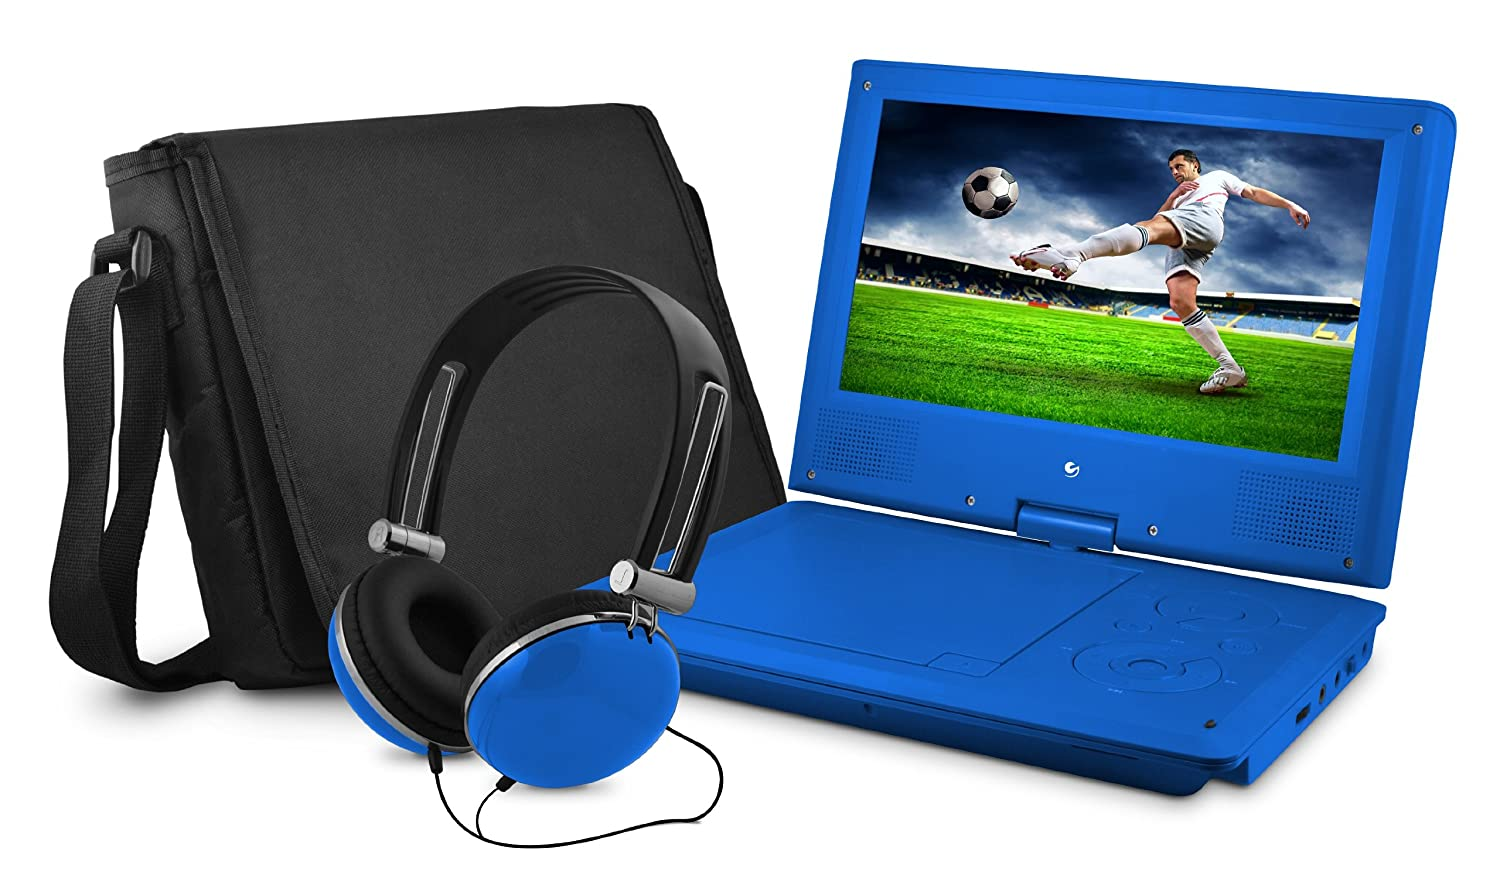 DVD Player, Ematic 9 inch Swivel Blue Portable DVD Player with Matching Headphones and Bag ( EPD909BU )